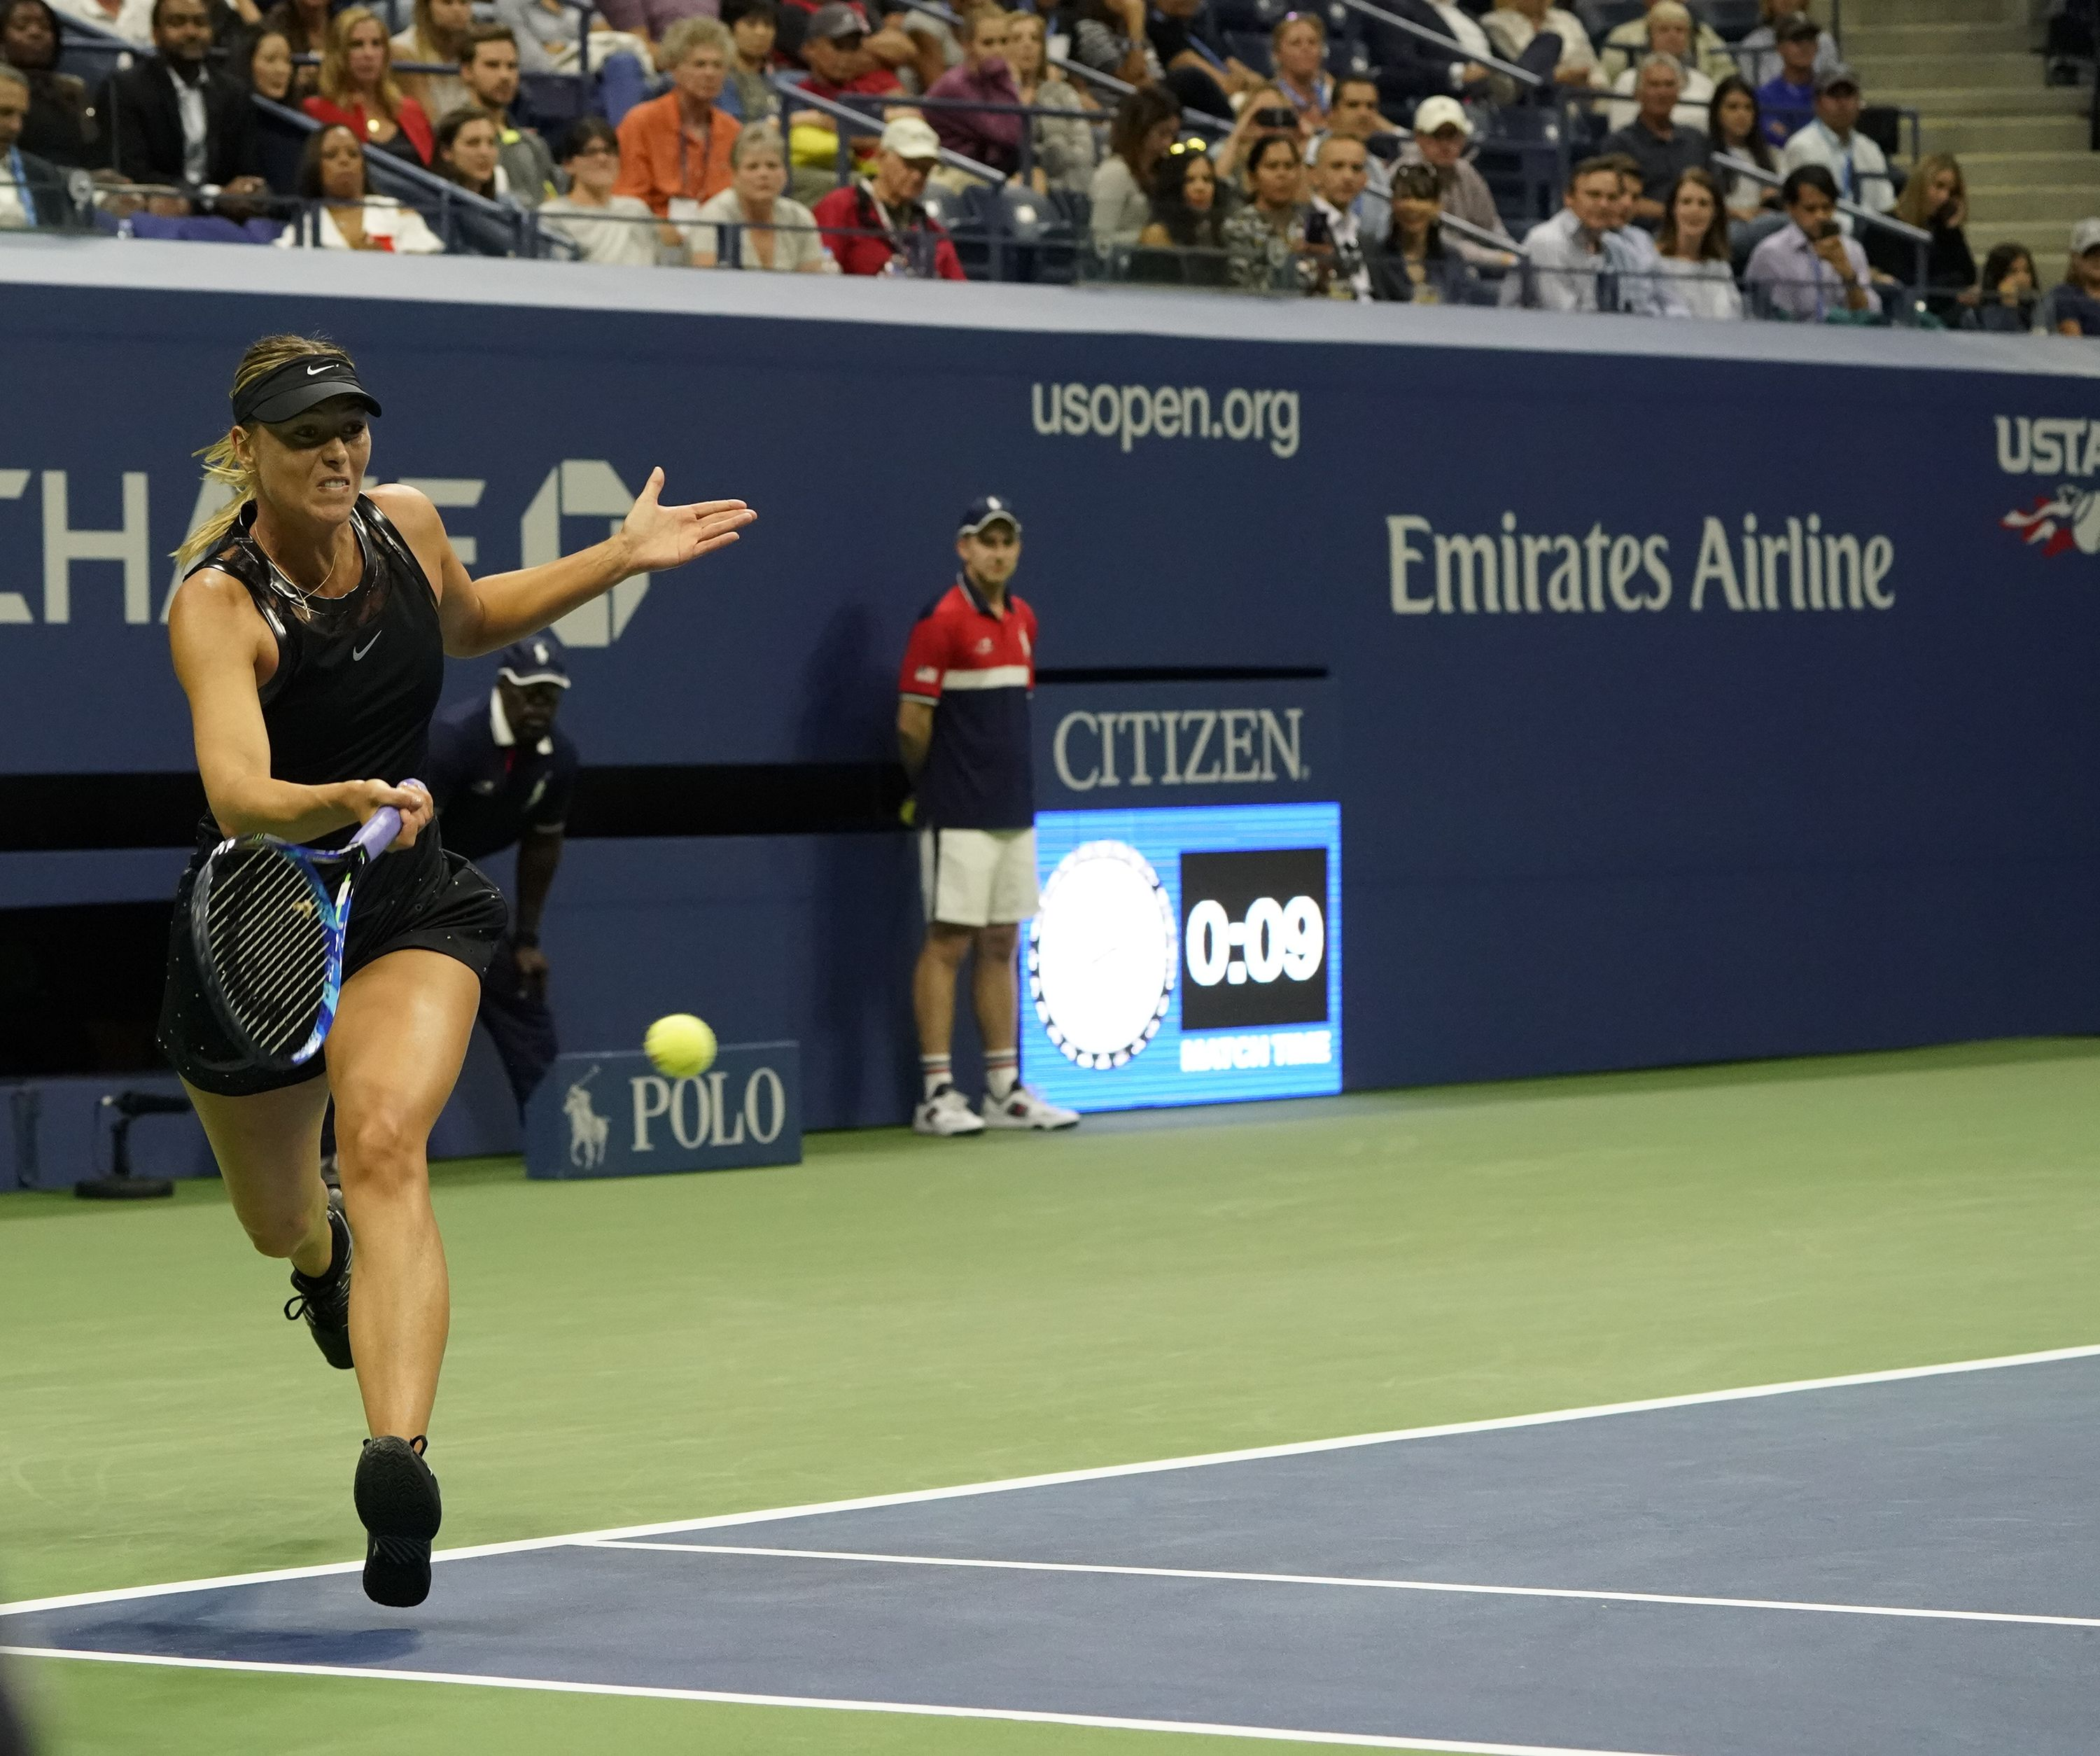 Maria Sharapova returns from the baseline in her U.S. Open match Monday against Simona Halep.(Photo courtesy Lev Radin)